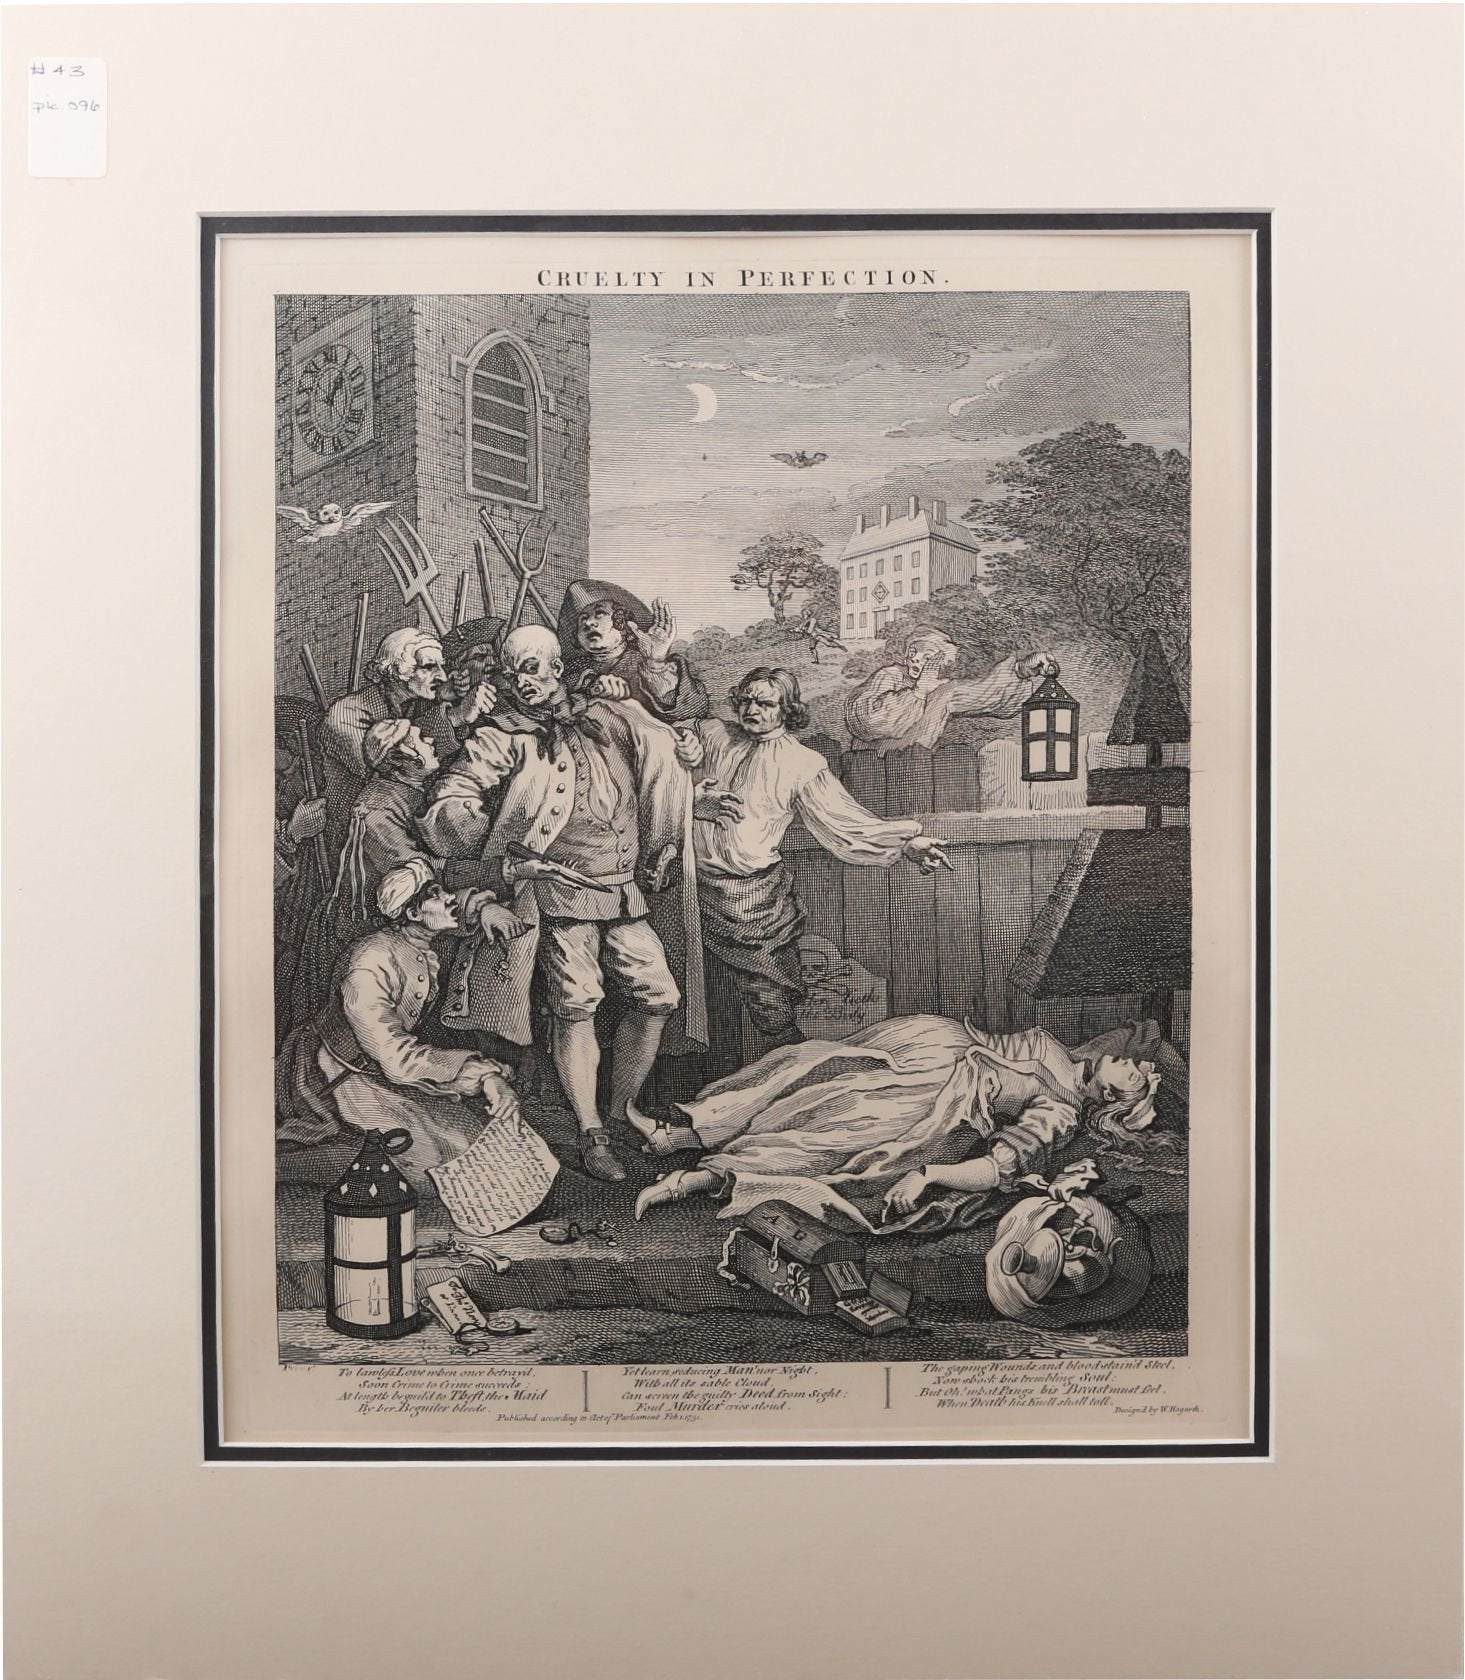 CRUELTY IN PERFECTION, WILLIAM HOGARTH - Fagan Arms